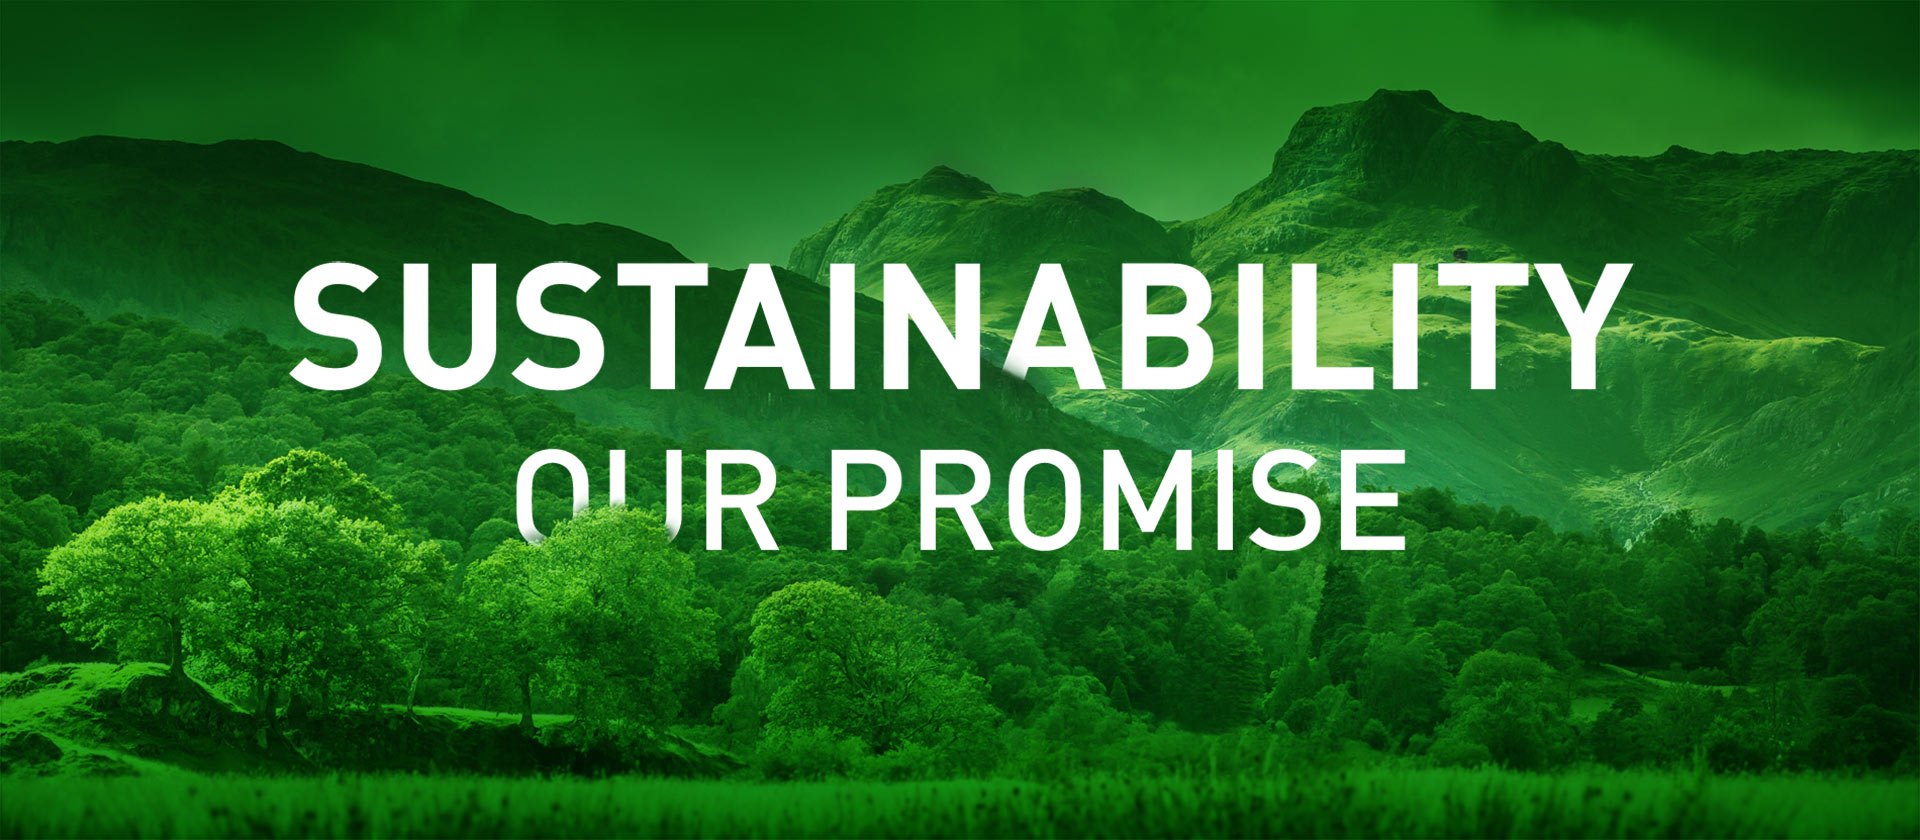 Sustainability - Our Promise